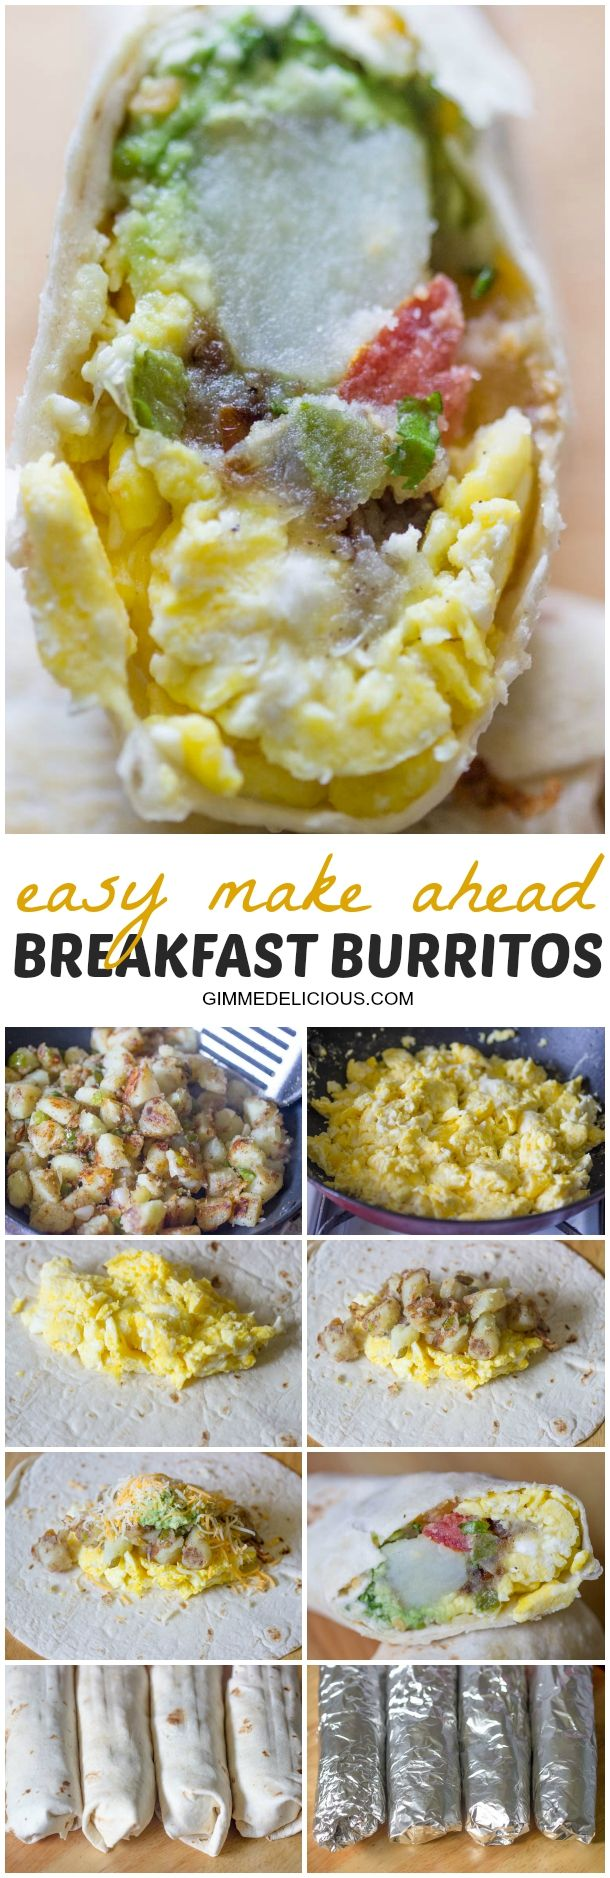 Make Ahead Breakfast Burritos | Gimme Delicious